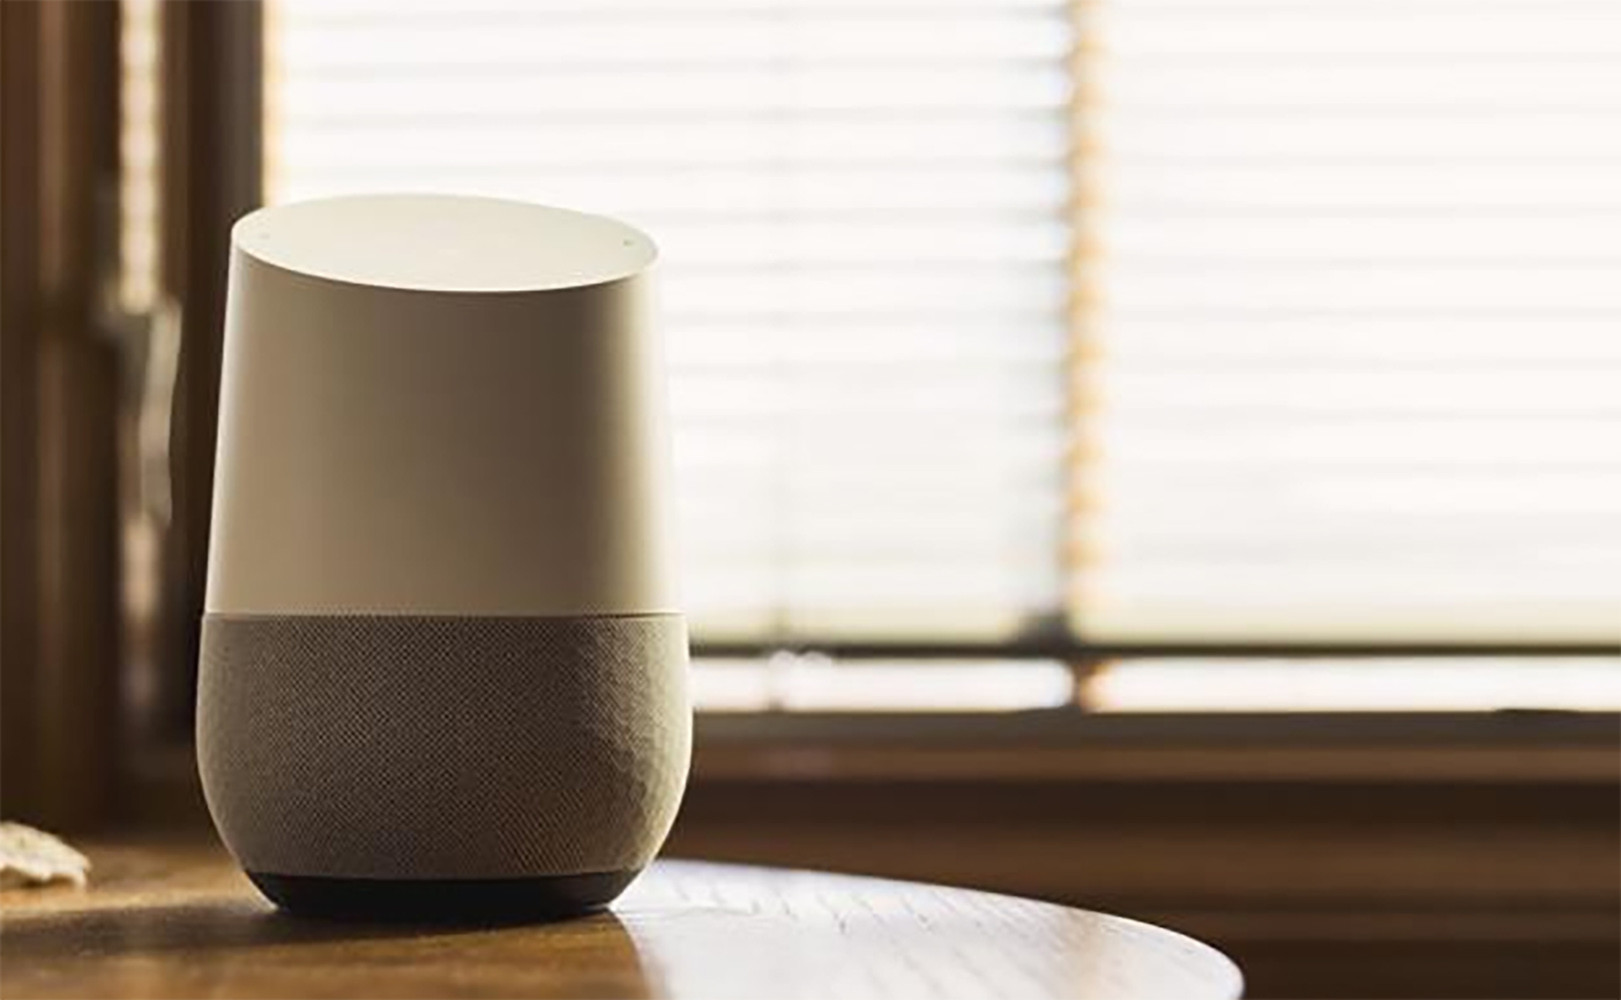 hablar con orange con google home